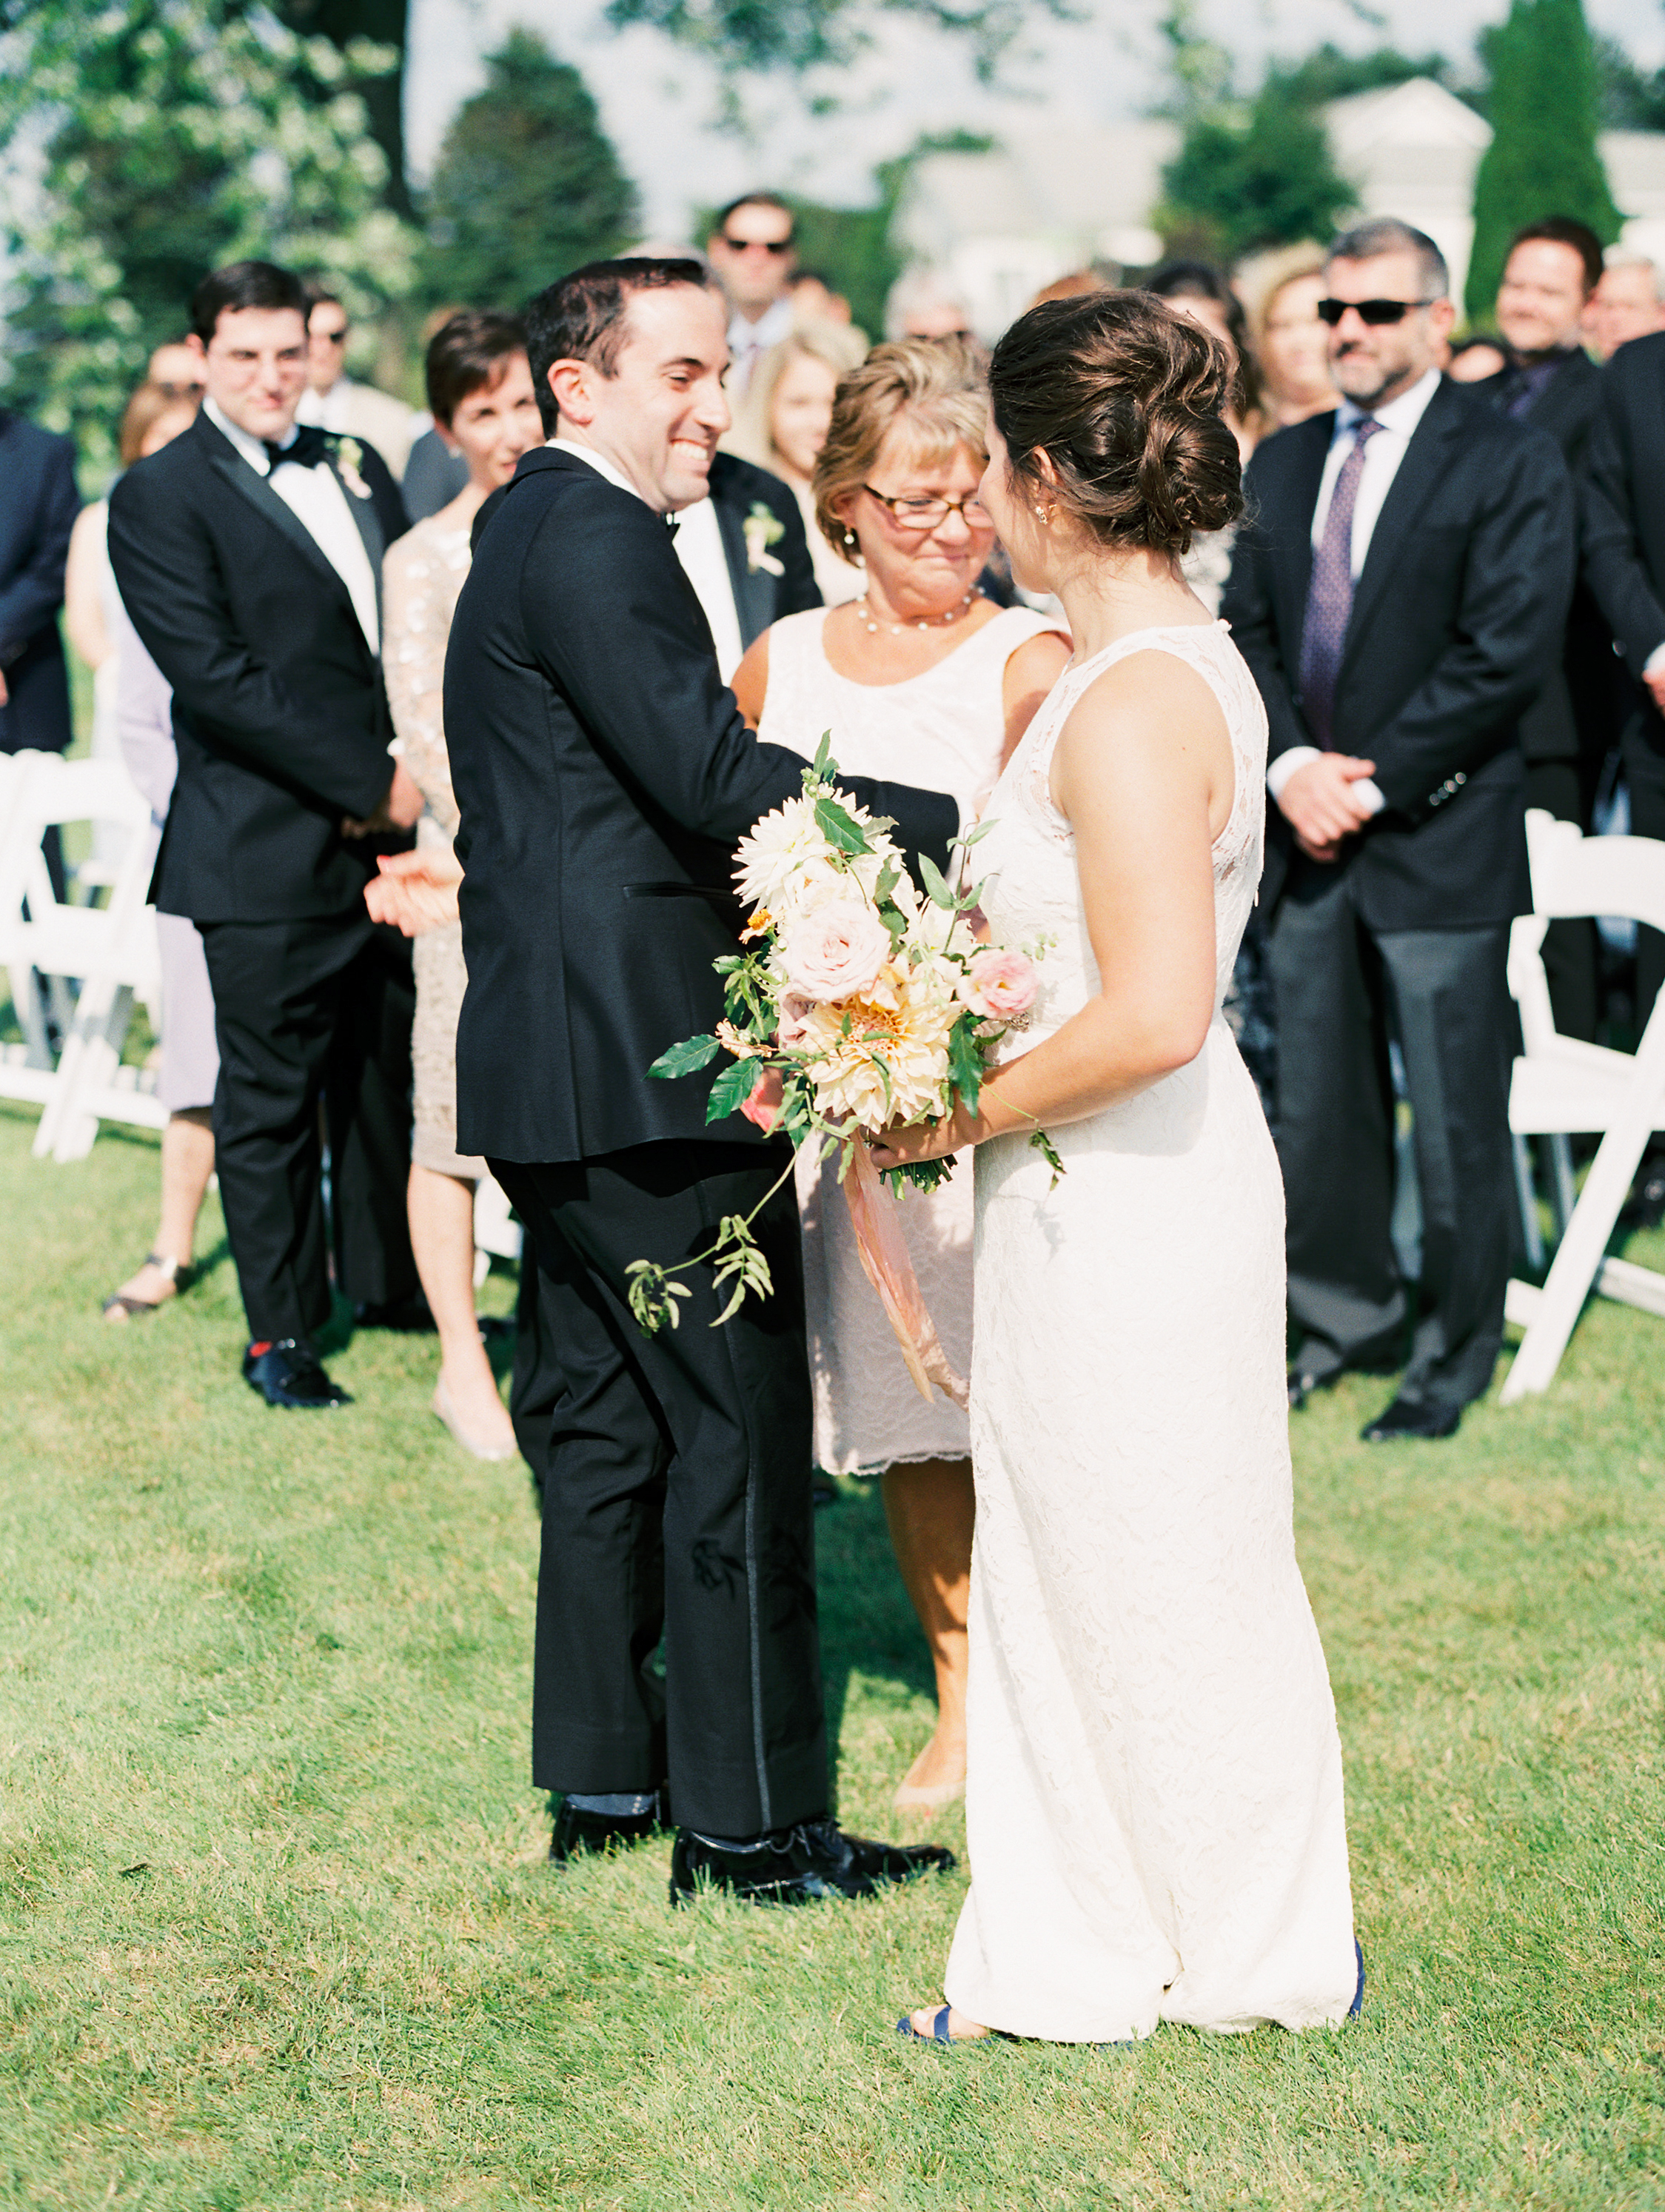 Zoller+Wedding+Ceremonyf-2.jpg